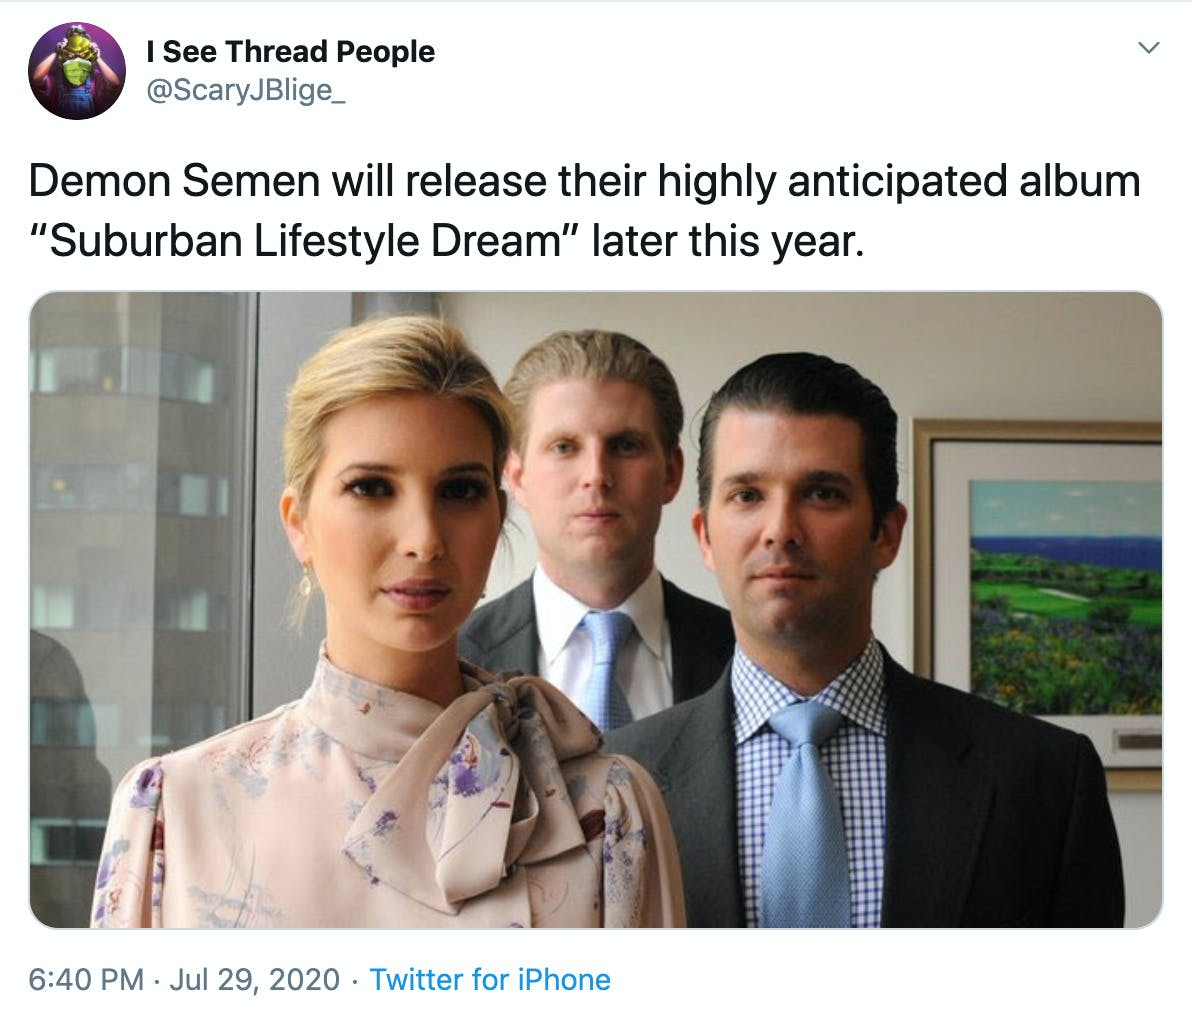 """""""Demon Semen will release their highly anticipated album """"Suburban Lifestyle Dream"""" later this year."""" image of Ivanka, Eric and Don Jr"""